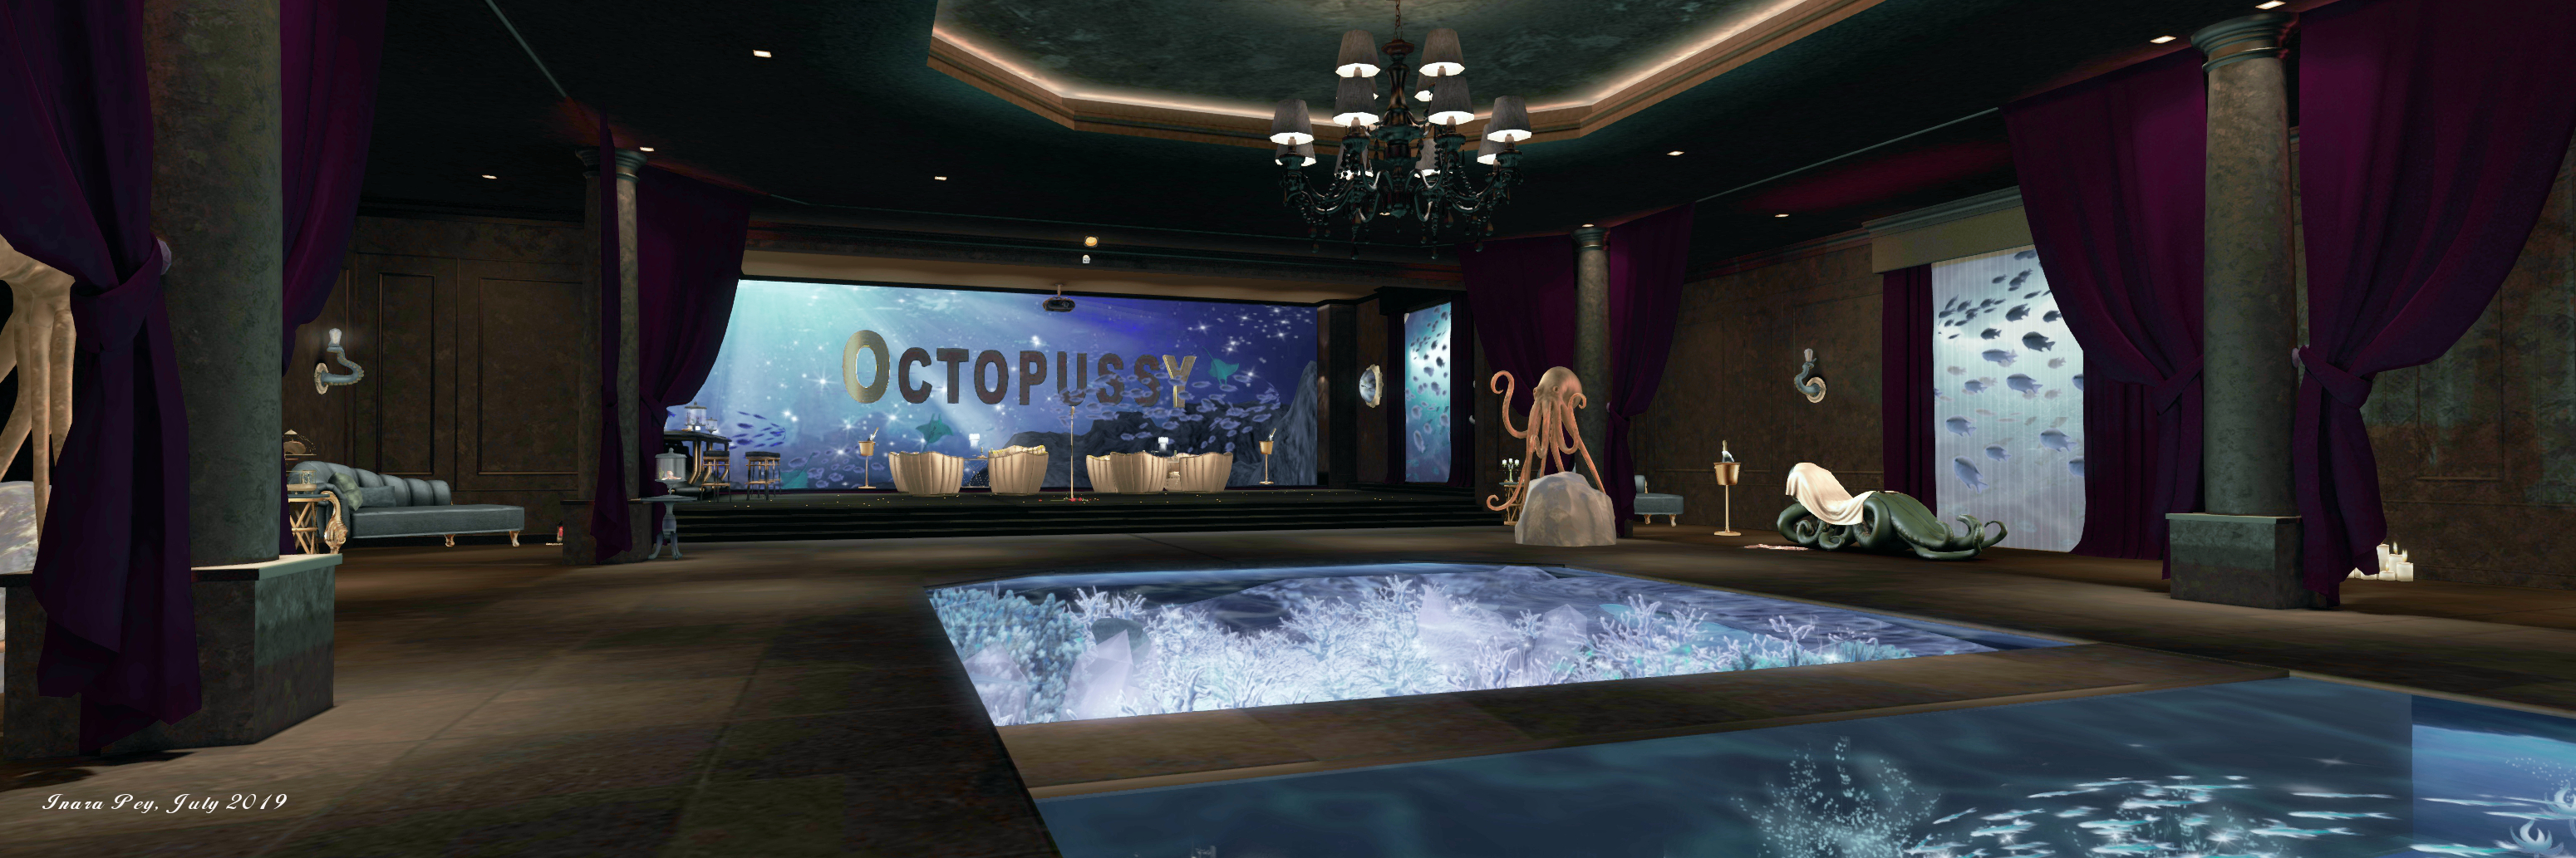 ][Octopussy][ goes Cuba; Inara Pey, July 2019, on Flickr